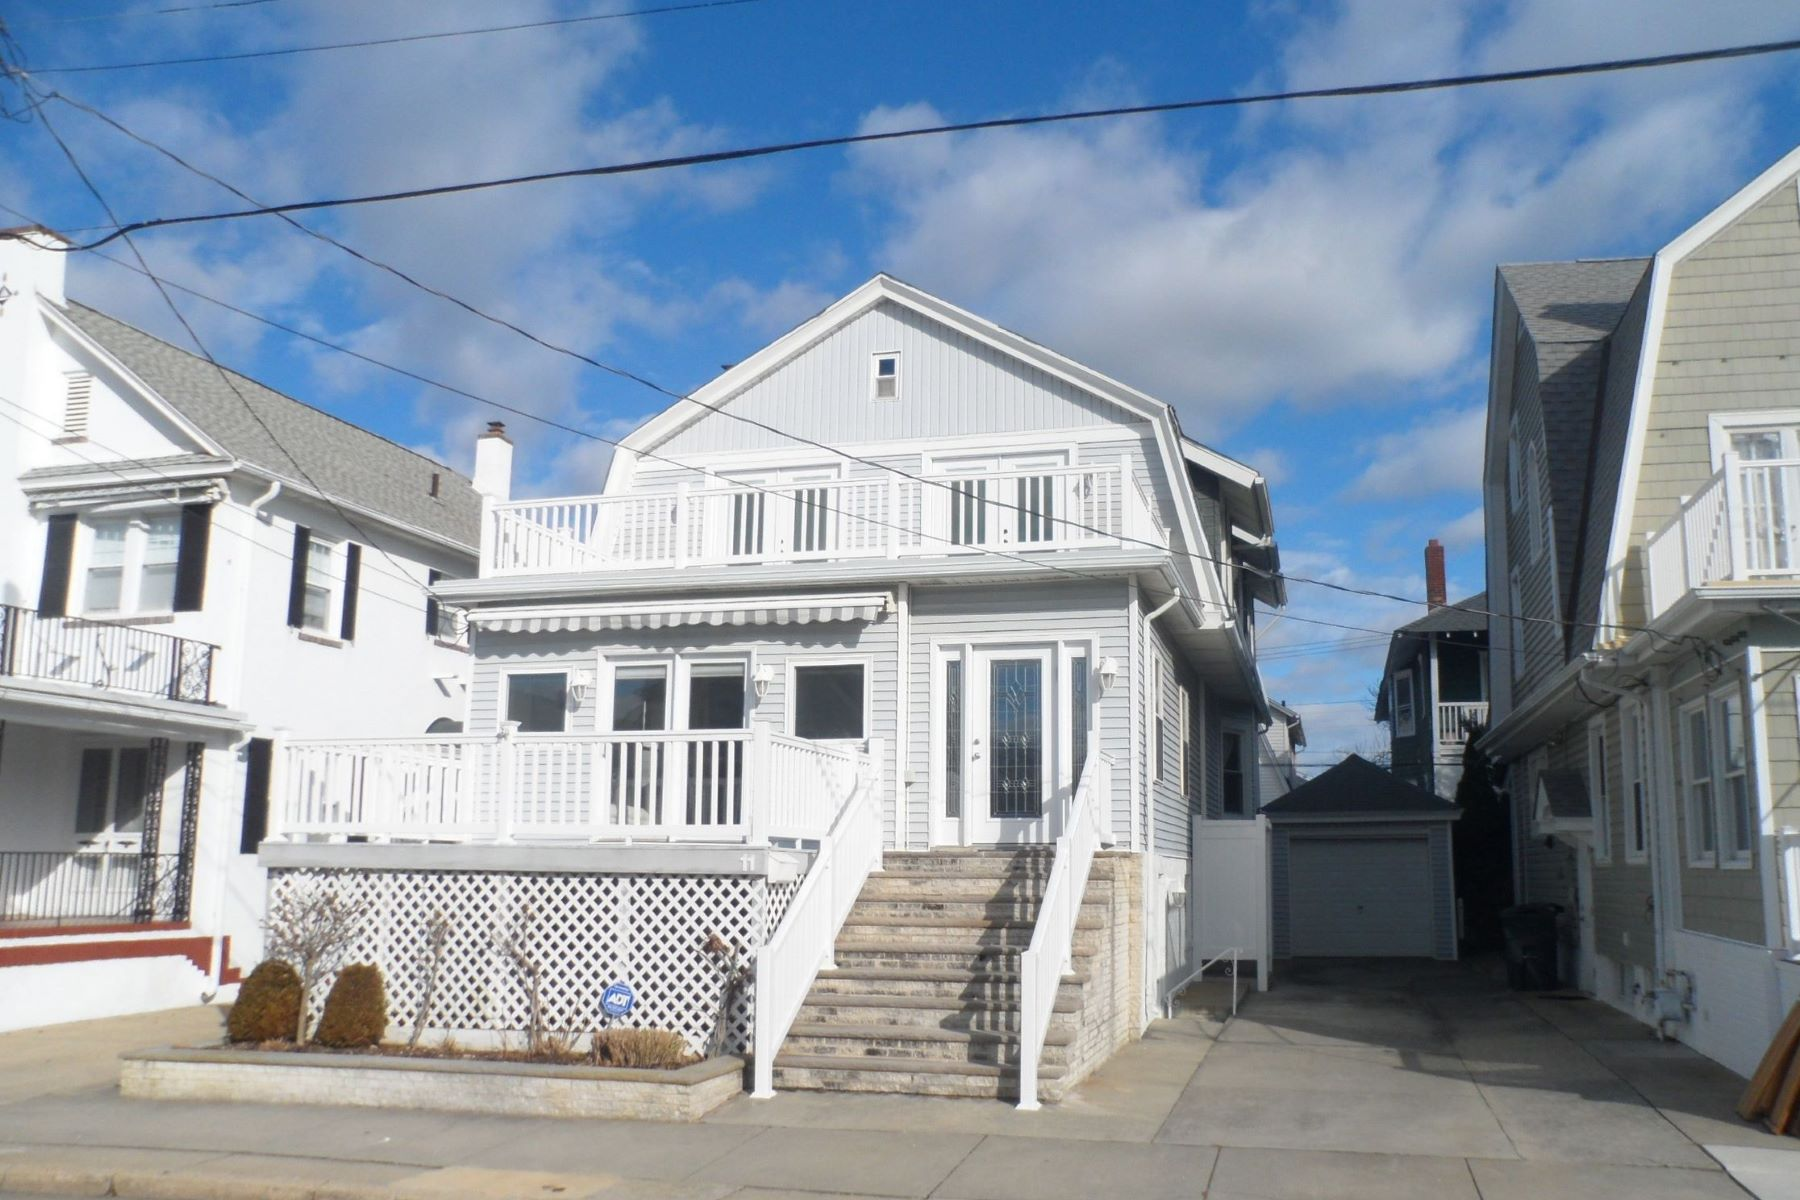 Single Family Home for Sale at 11 S Wyoming Ave Ventnor, New Jersey 08406 United States